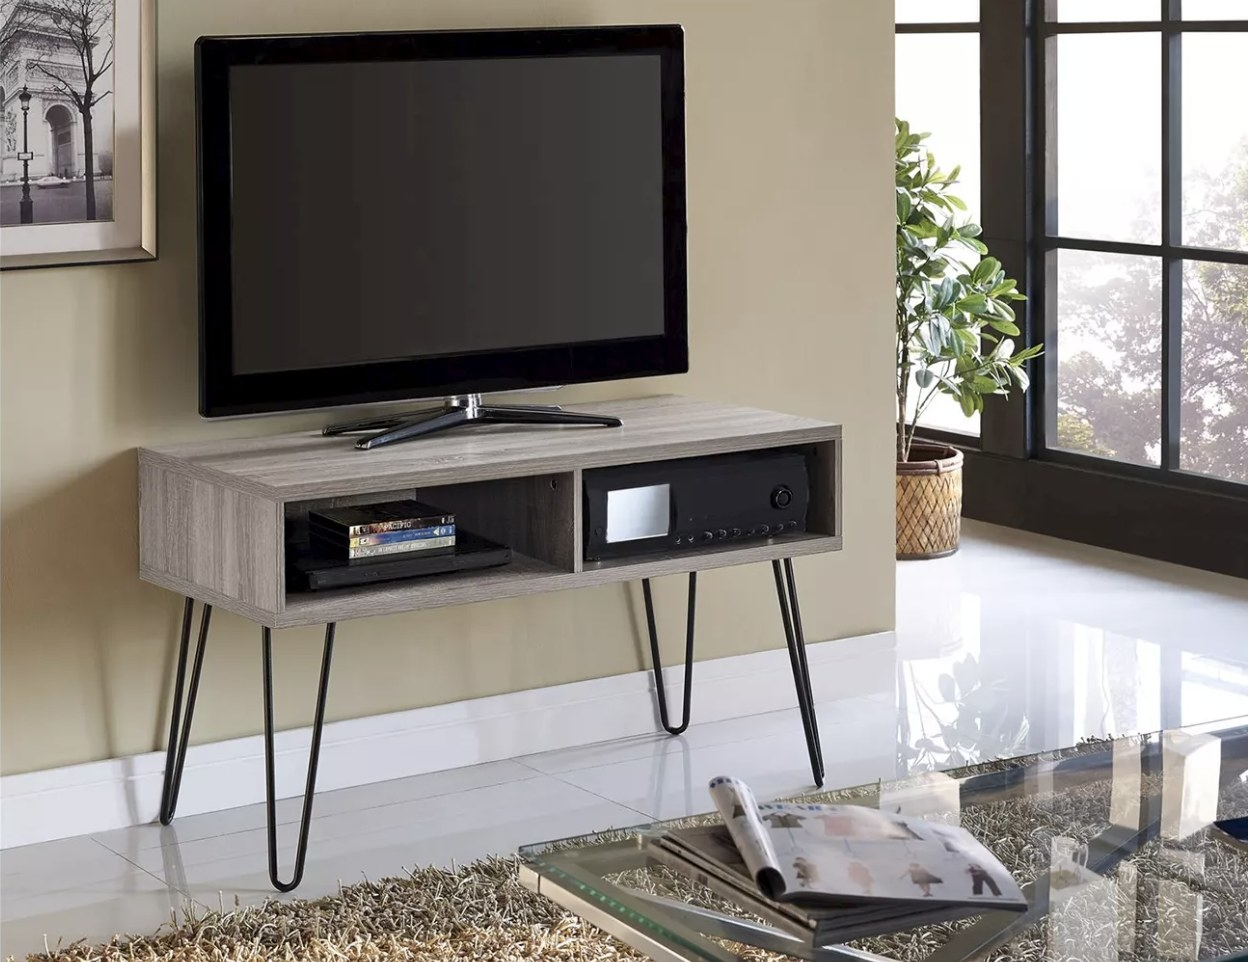 The retro-style tv stand in gray with black hairpin legs